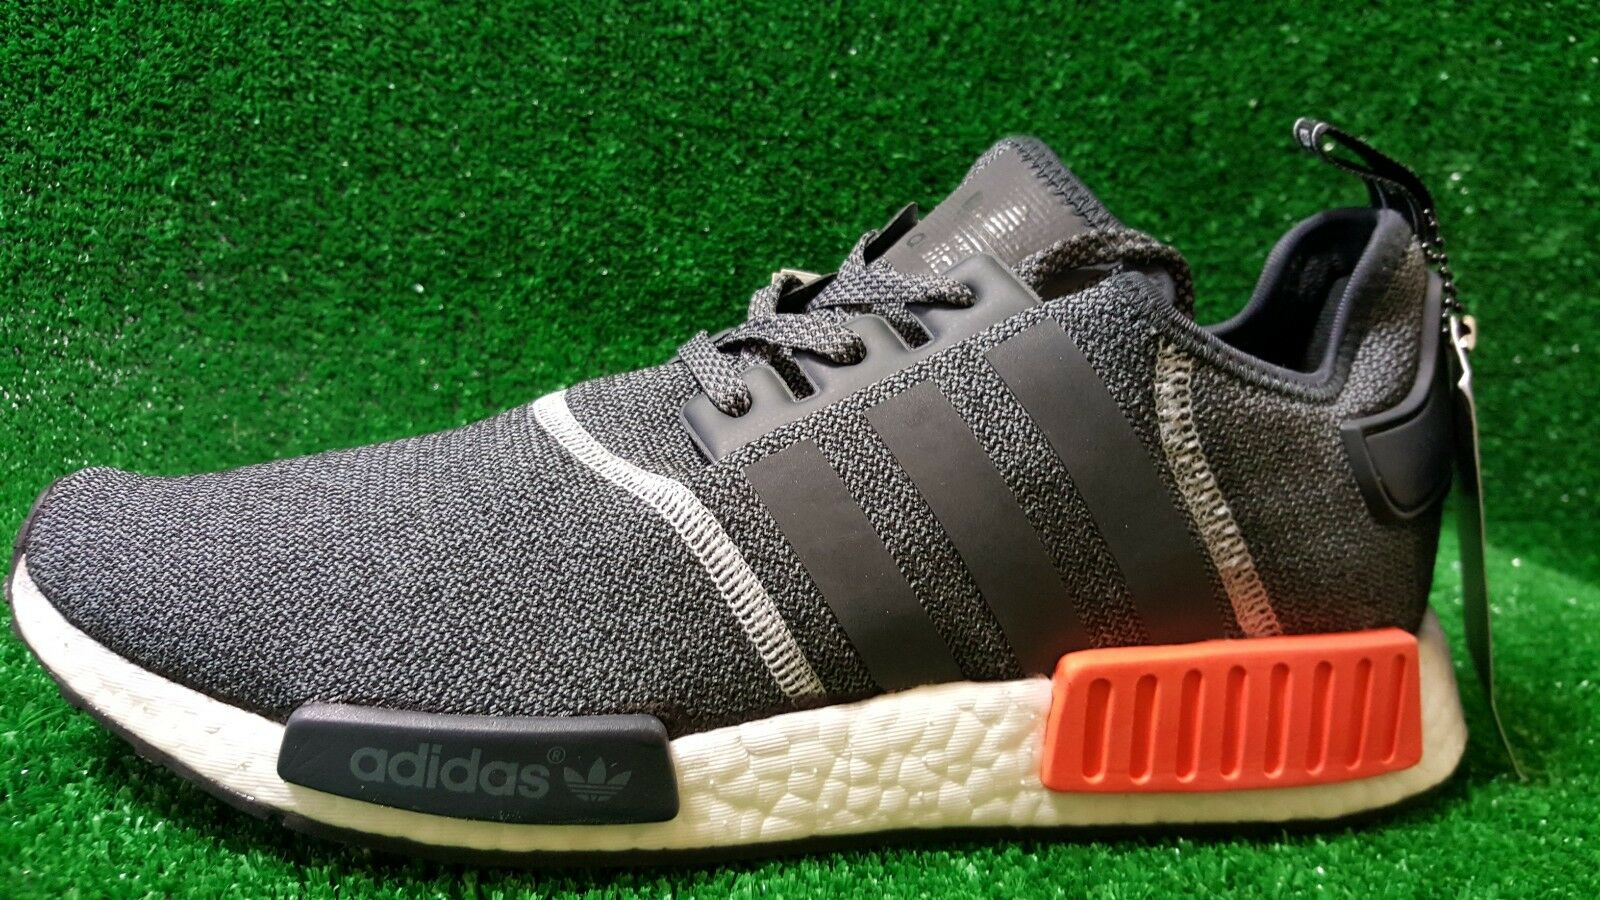 Adidas NMD R_1 Grey Orange Charcoal Reflective S31510 AUTHENTIC Men Size 11 US AUTHENTIC S31510 f43348